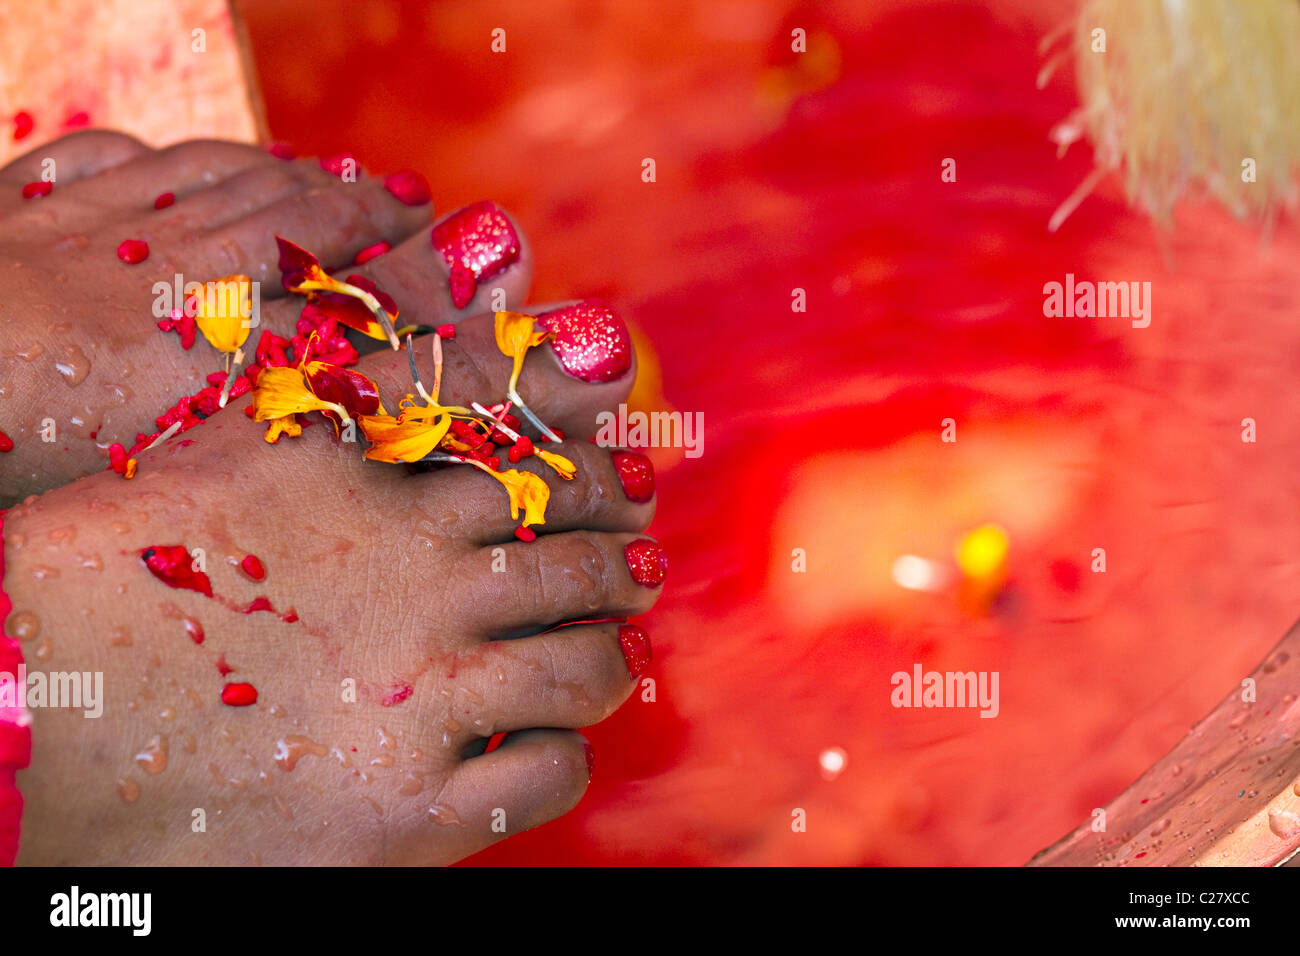 Female feet with flower during a Hindu rite. Nepal, Asia - Stock Image